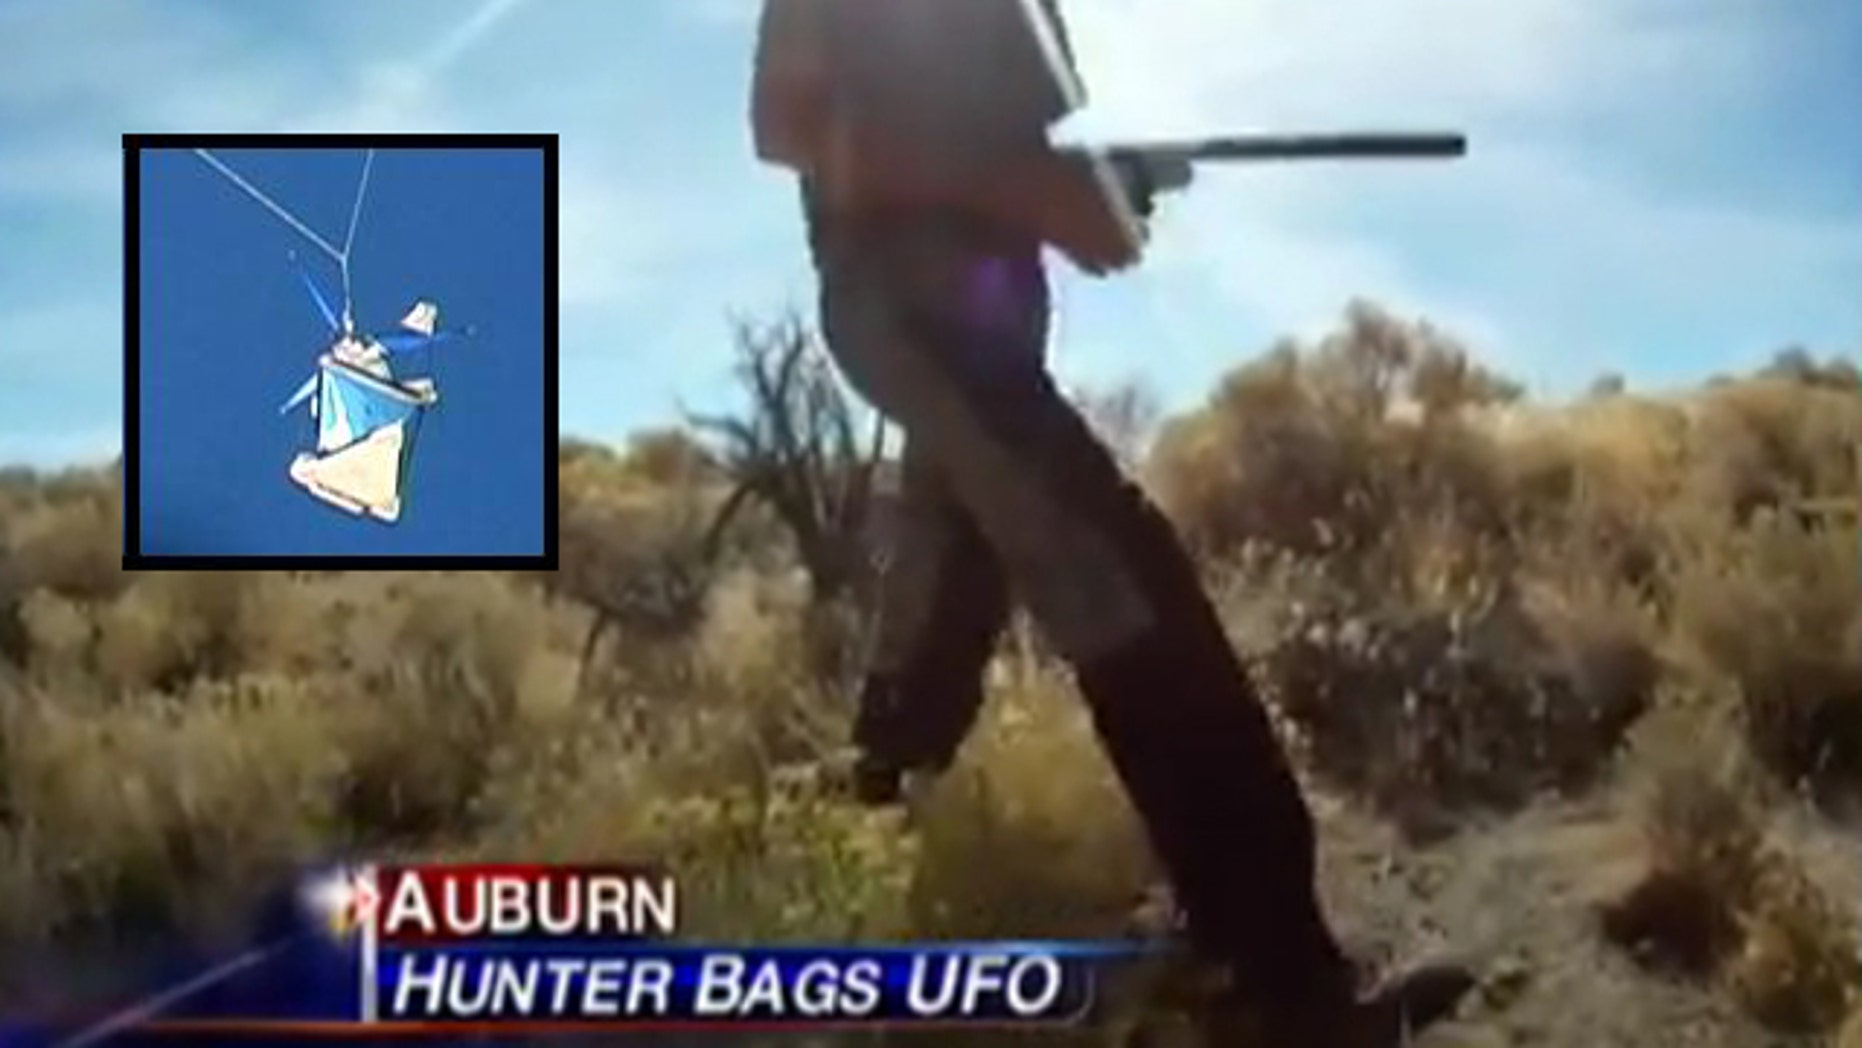 A Nevada hunter and the photo of the strange object that fell from the skies and into his lap, seen here in images from an ABC10 video.